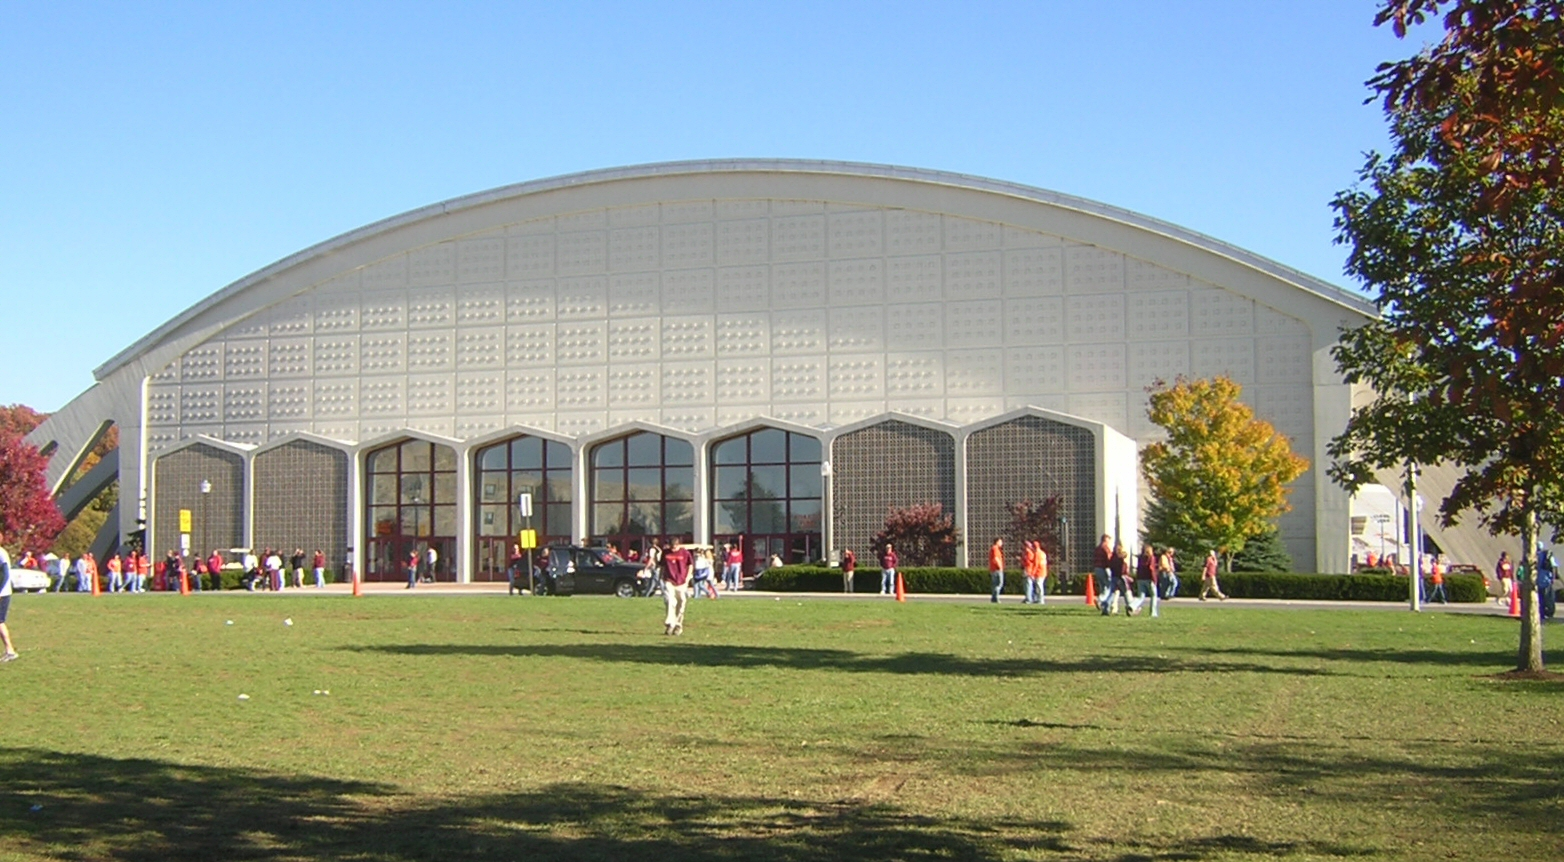 Cassell Coliseum at Virginia Tech (exterior); image by UserB - Own work, GFDL 1.2, https://commons.wikimedia.org/w/index.php?curid=1302023